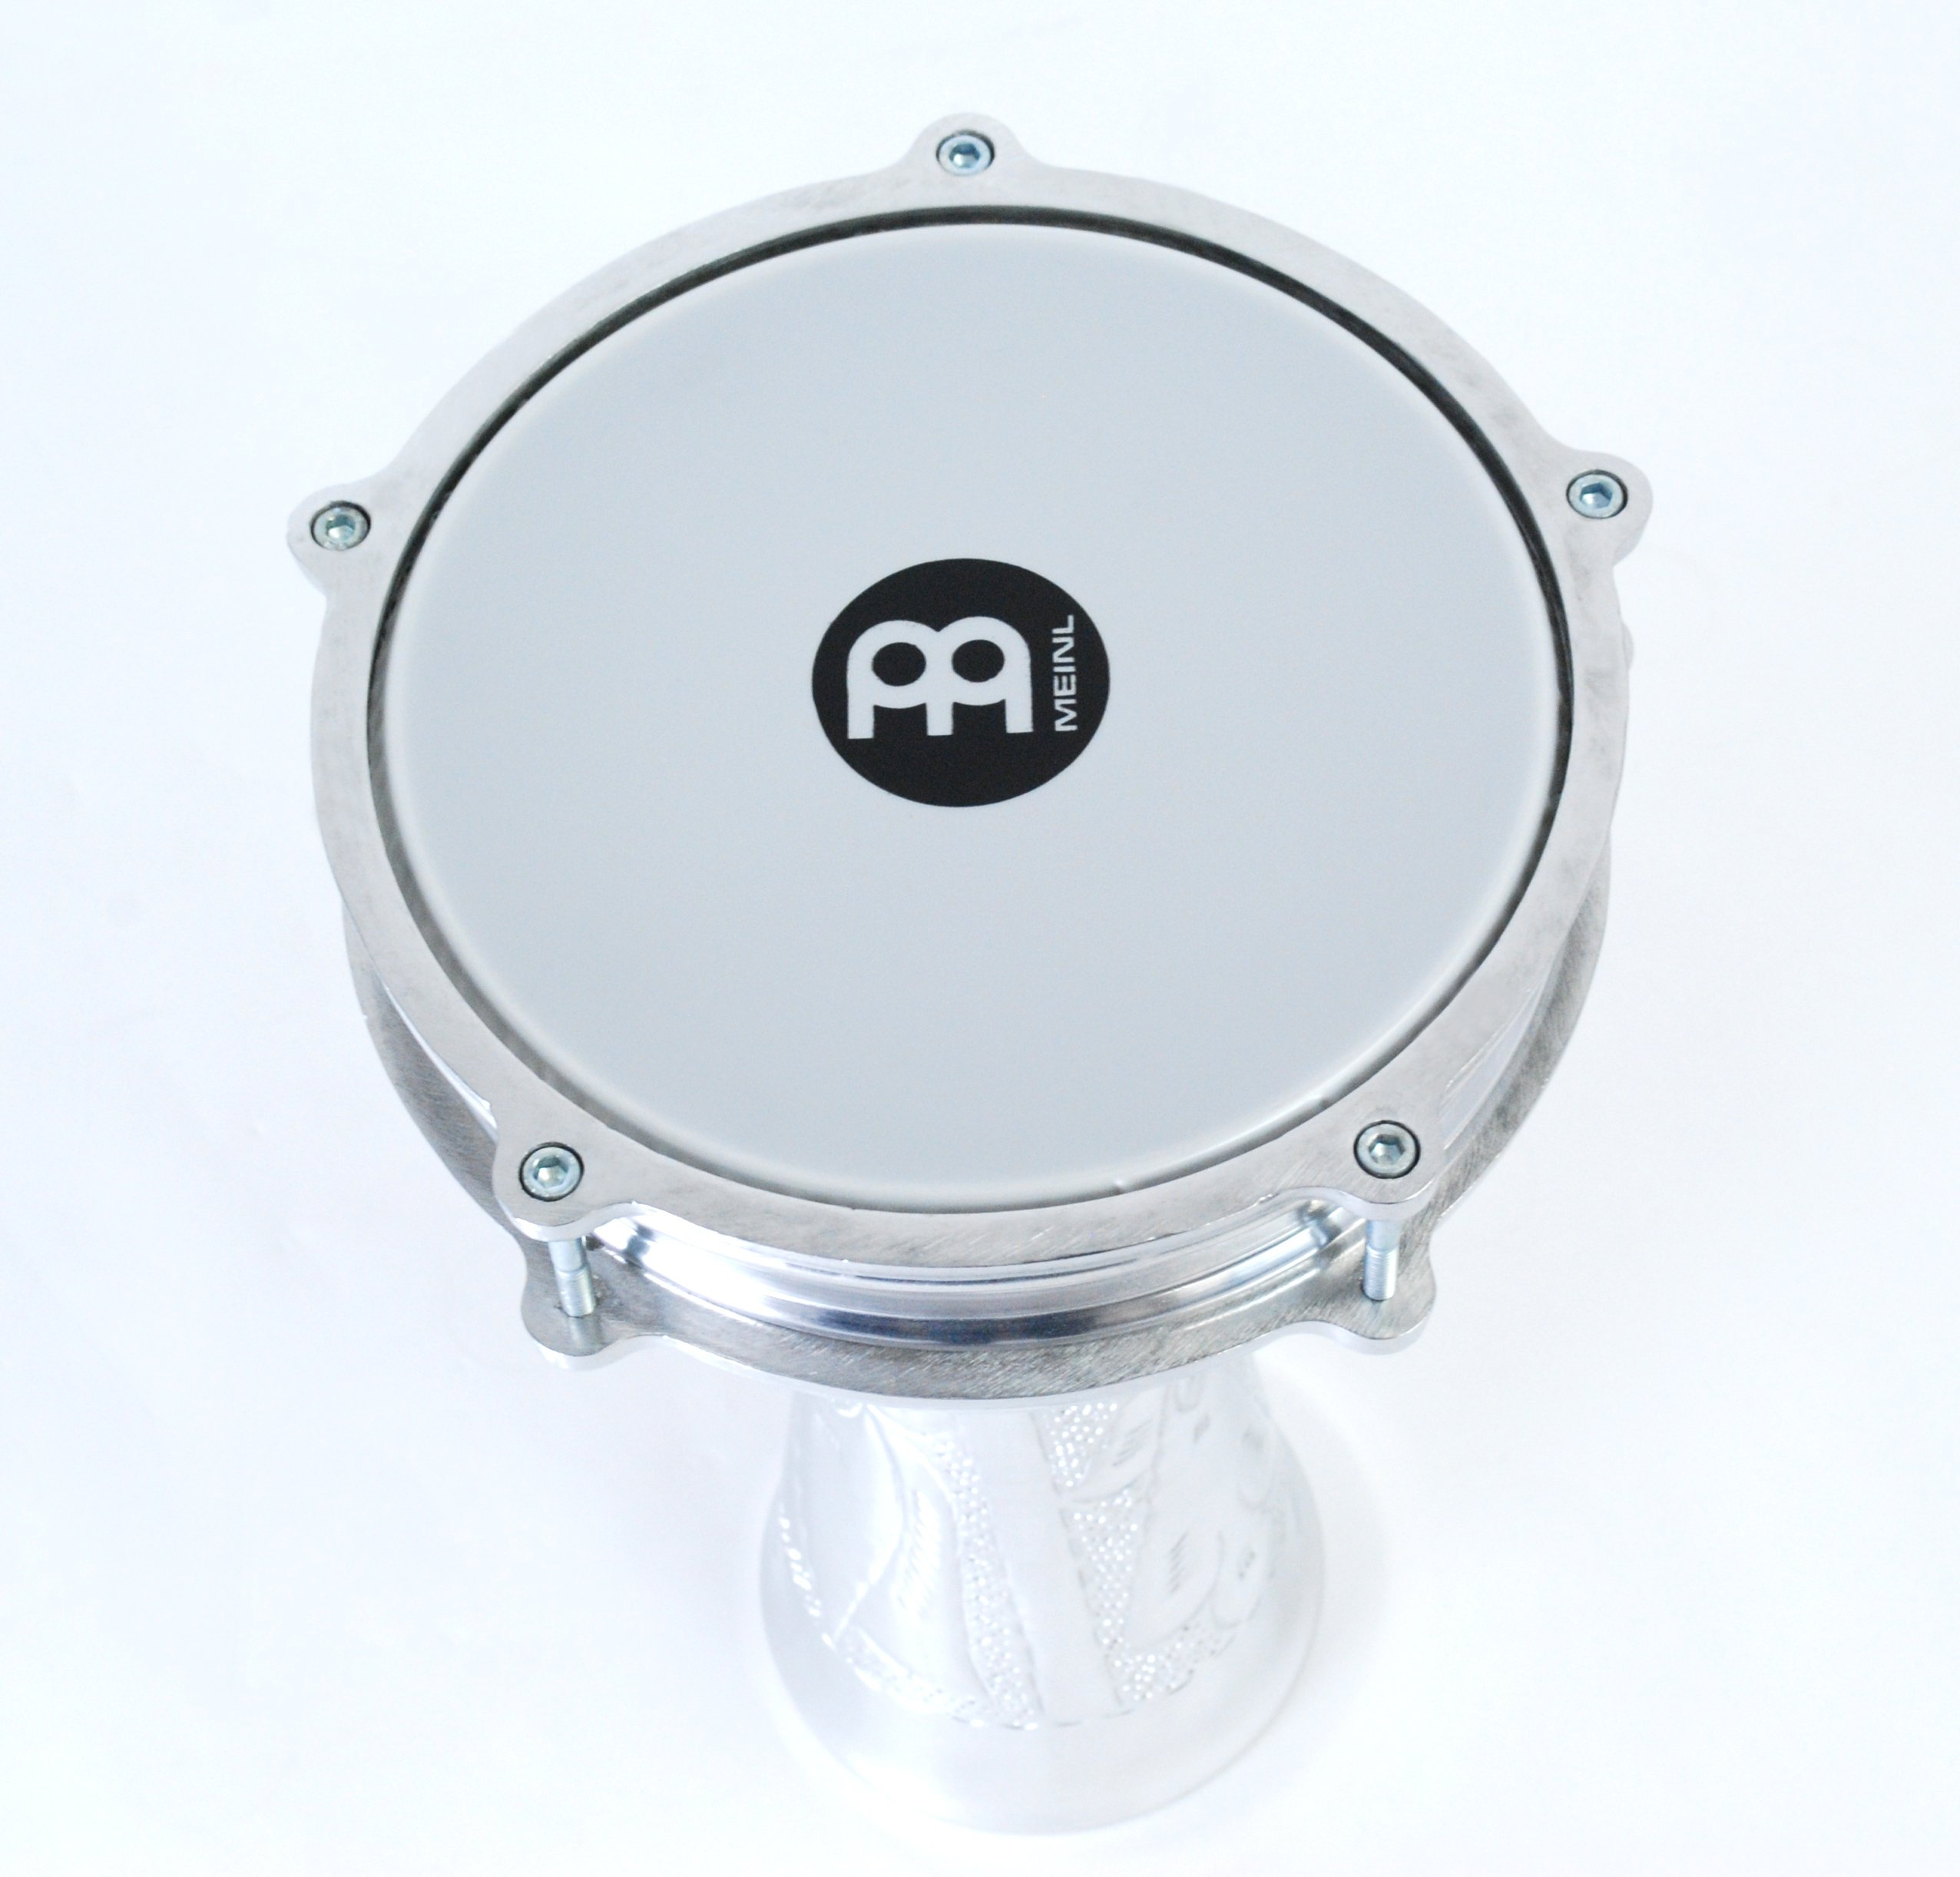 Meinl Percussion Darbuka with Hand Hammered Aluminum Shell-Made in Turkey-8'' Tunable Synthetic Head, 2-Year Warranty (HE-114) by Meinl Percussion (Image #5)